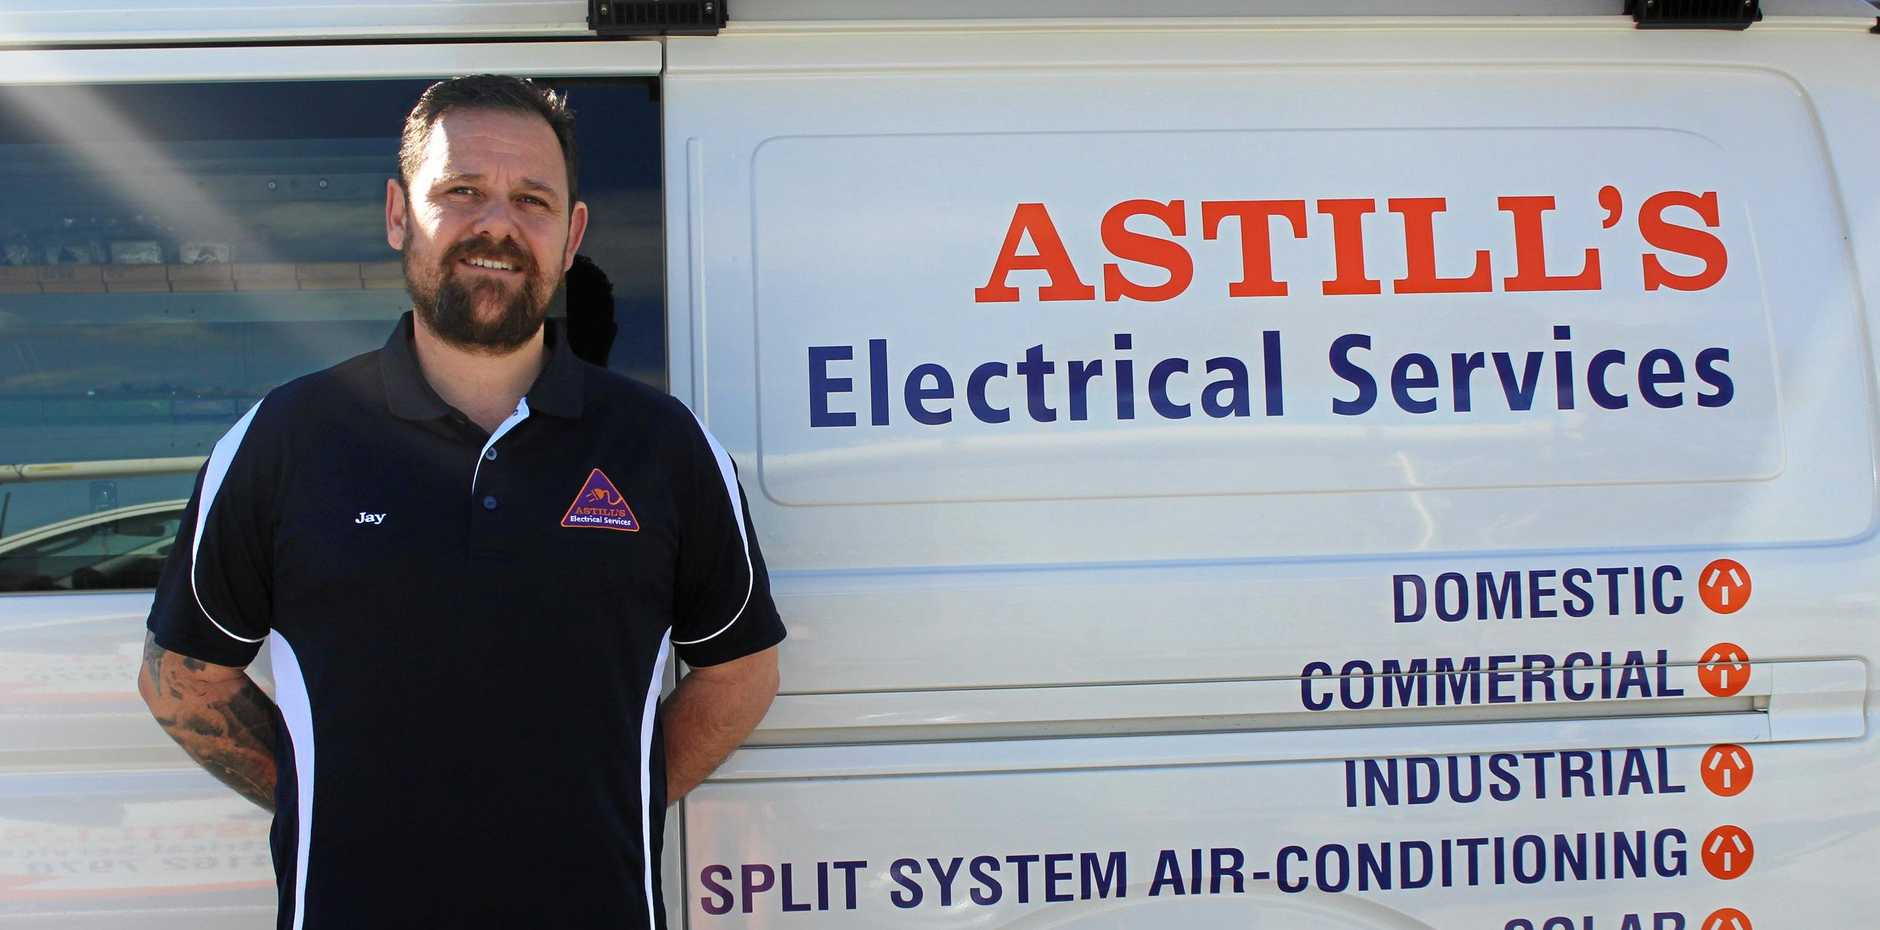 Astill's Electrical Services Supervisor Jay Hilsley said workplace and employee health and safety is very important.